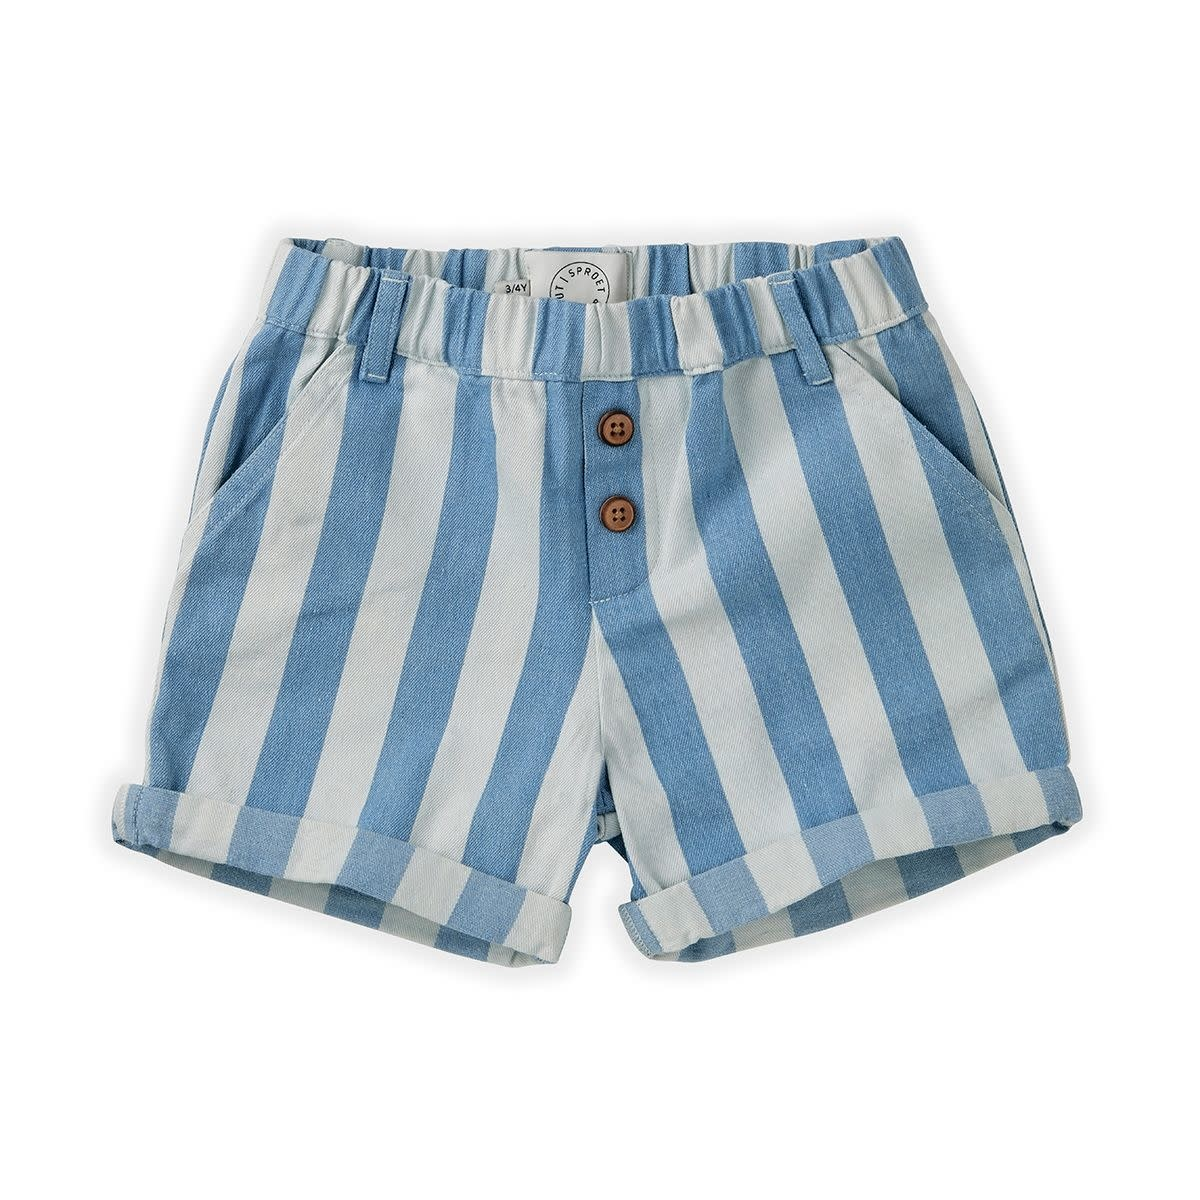 Sproet & Sprout Sproet&Sprout - Short demin stripe